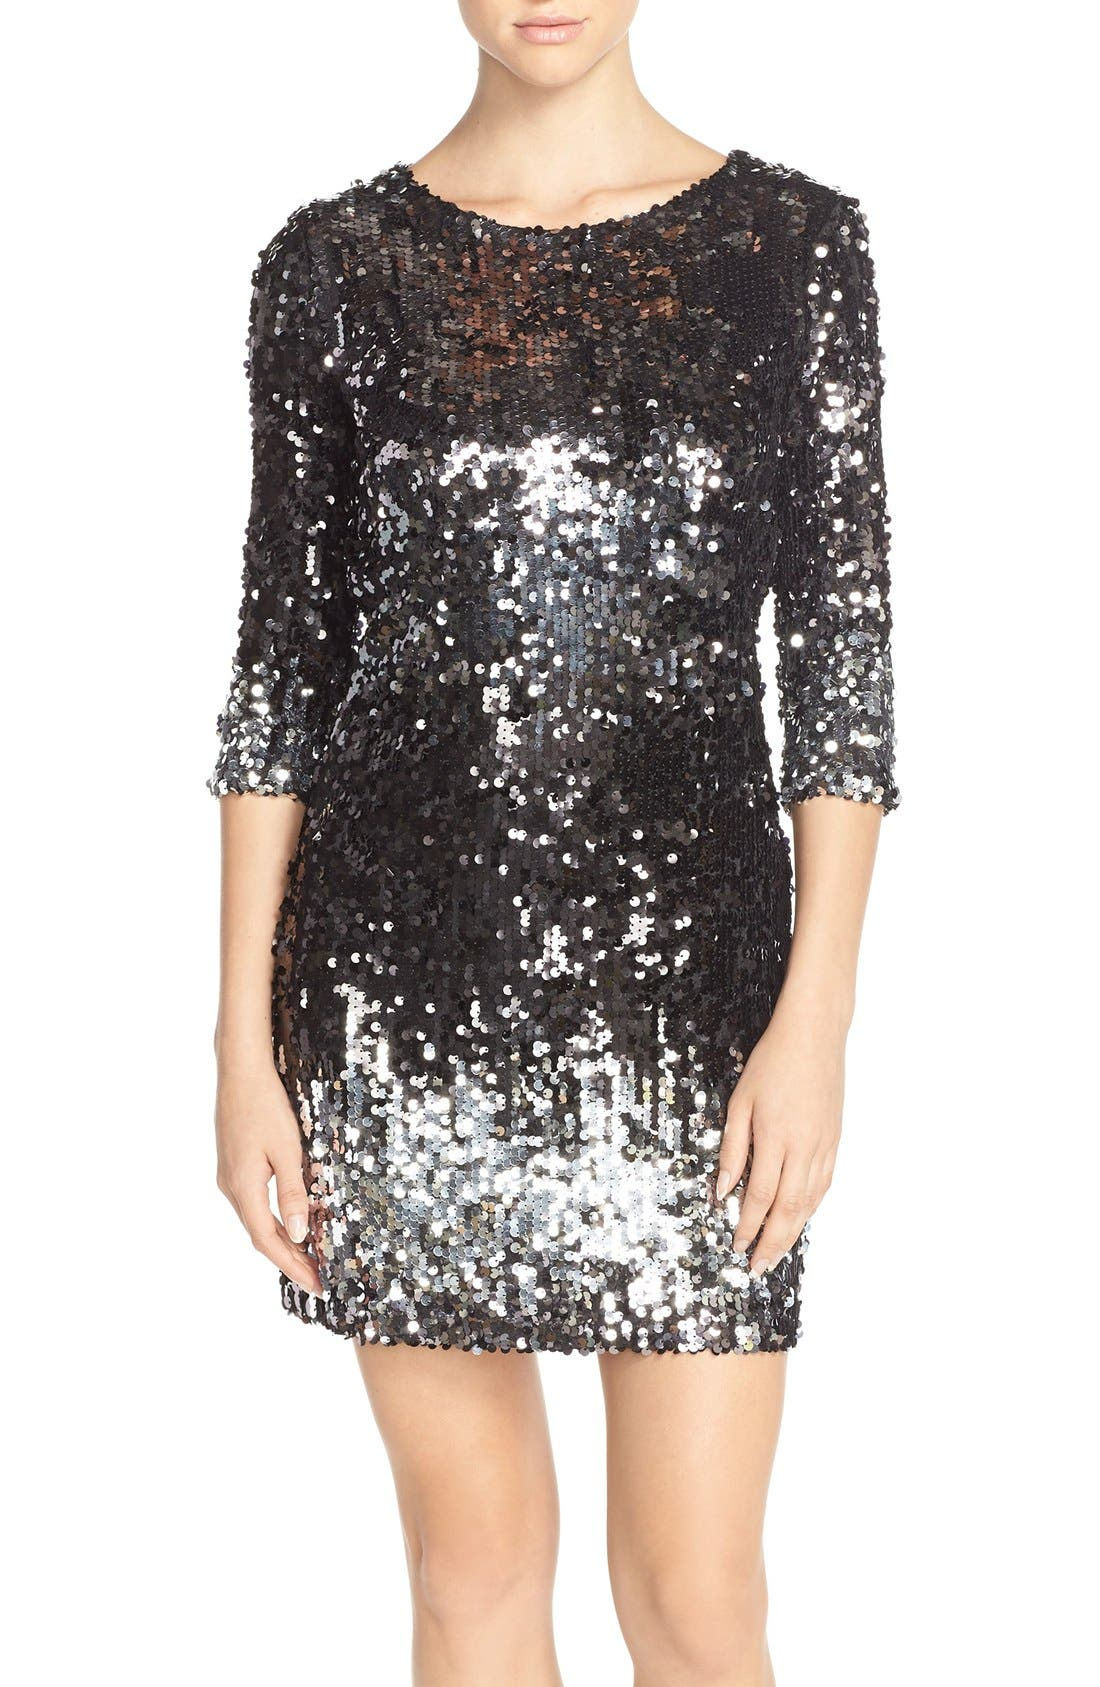 Alternate Image 1 Selected - BB Dakota 'Elise' Ombré Sequin Sheath Dress